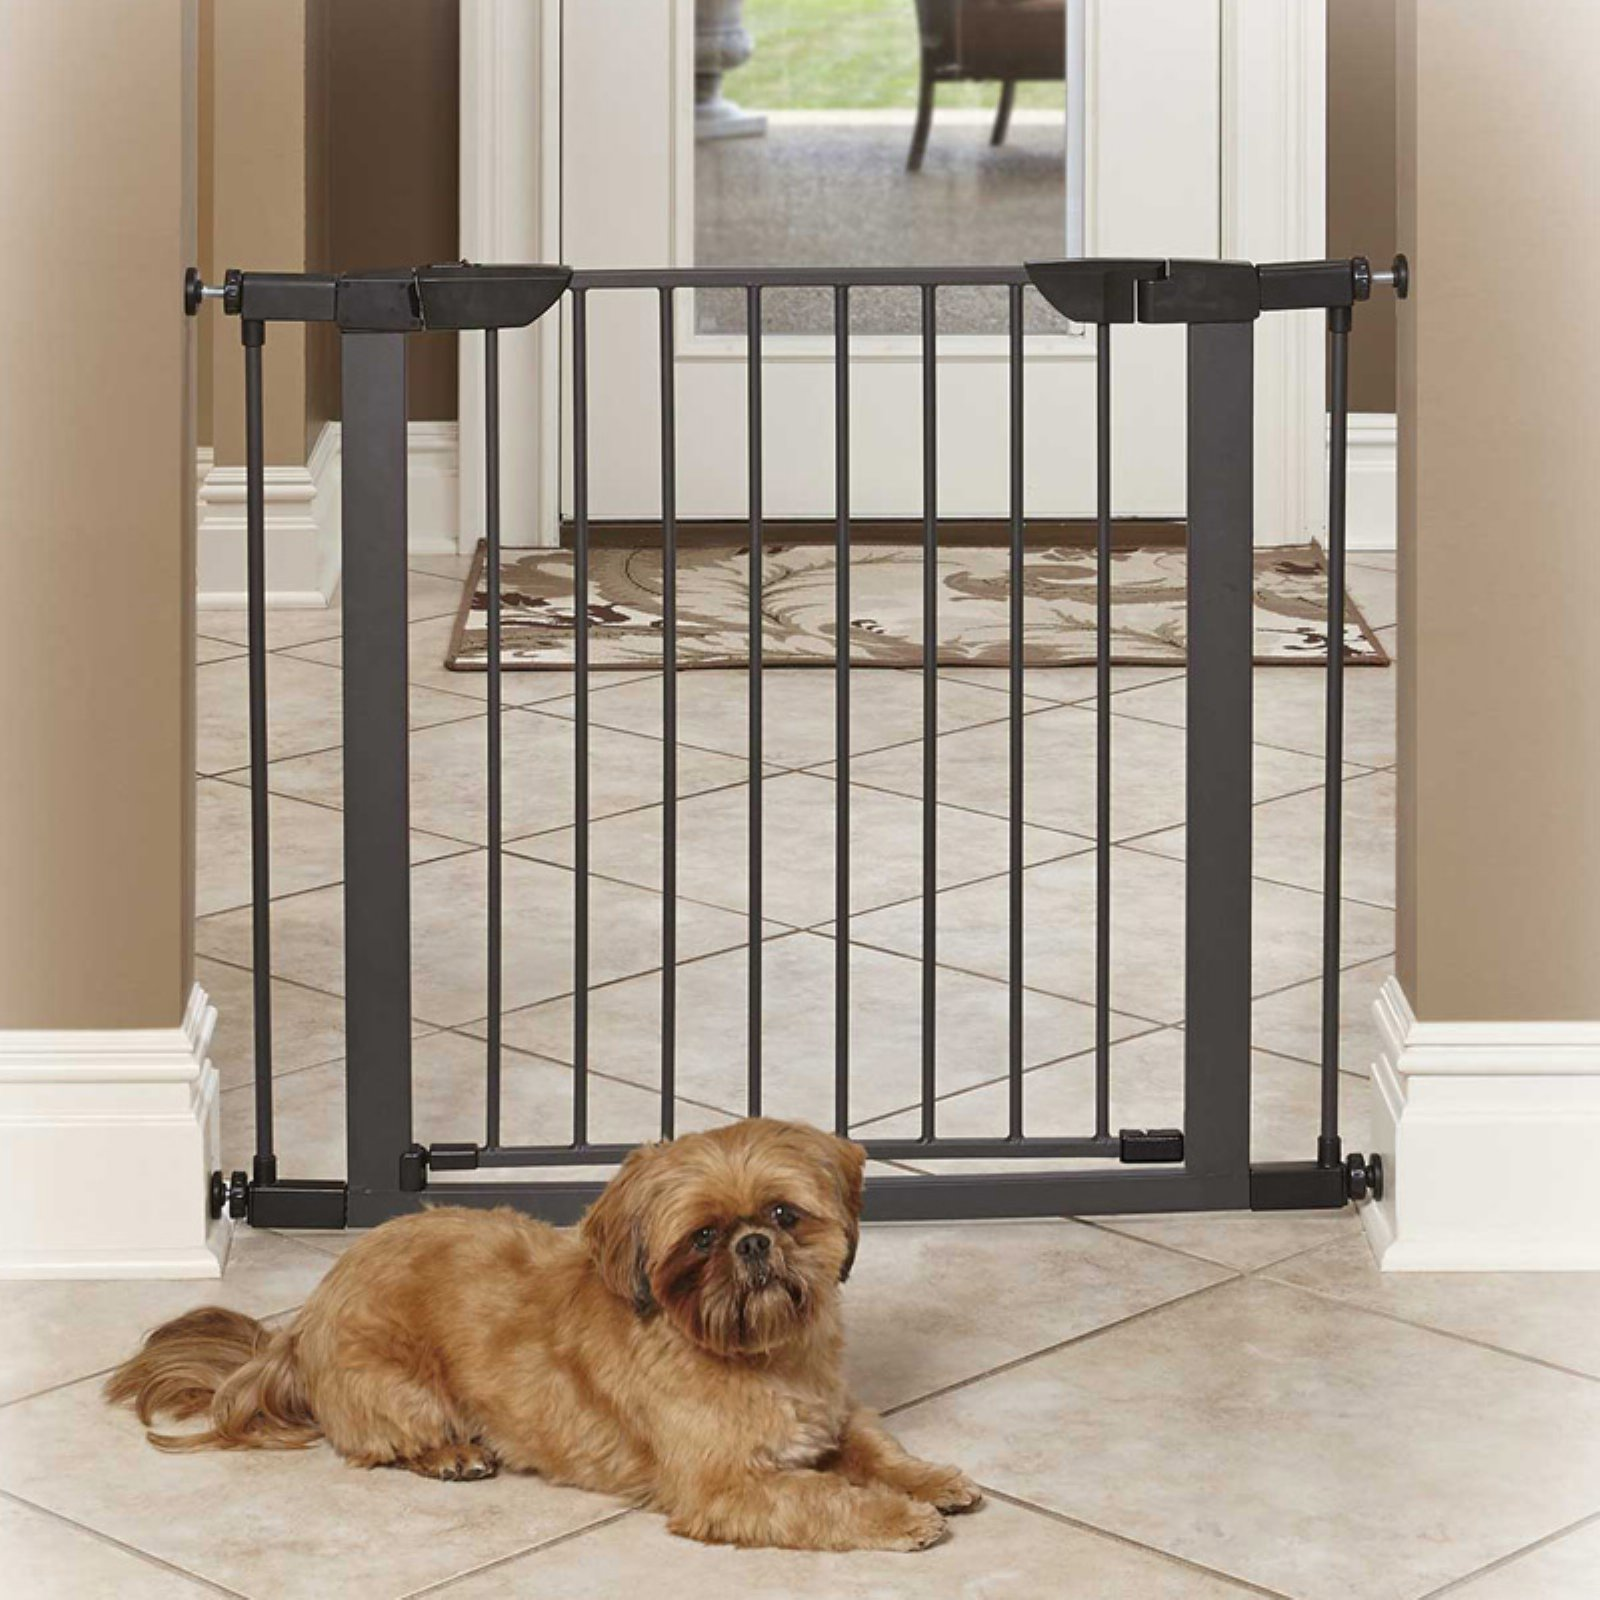 midwest home for pets steel pet gate 295 in these products include dog crates training puppy crates dog kennels cat playpens bird cages